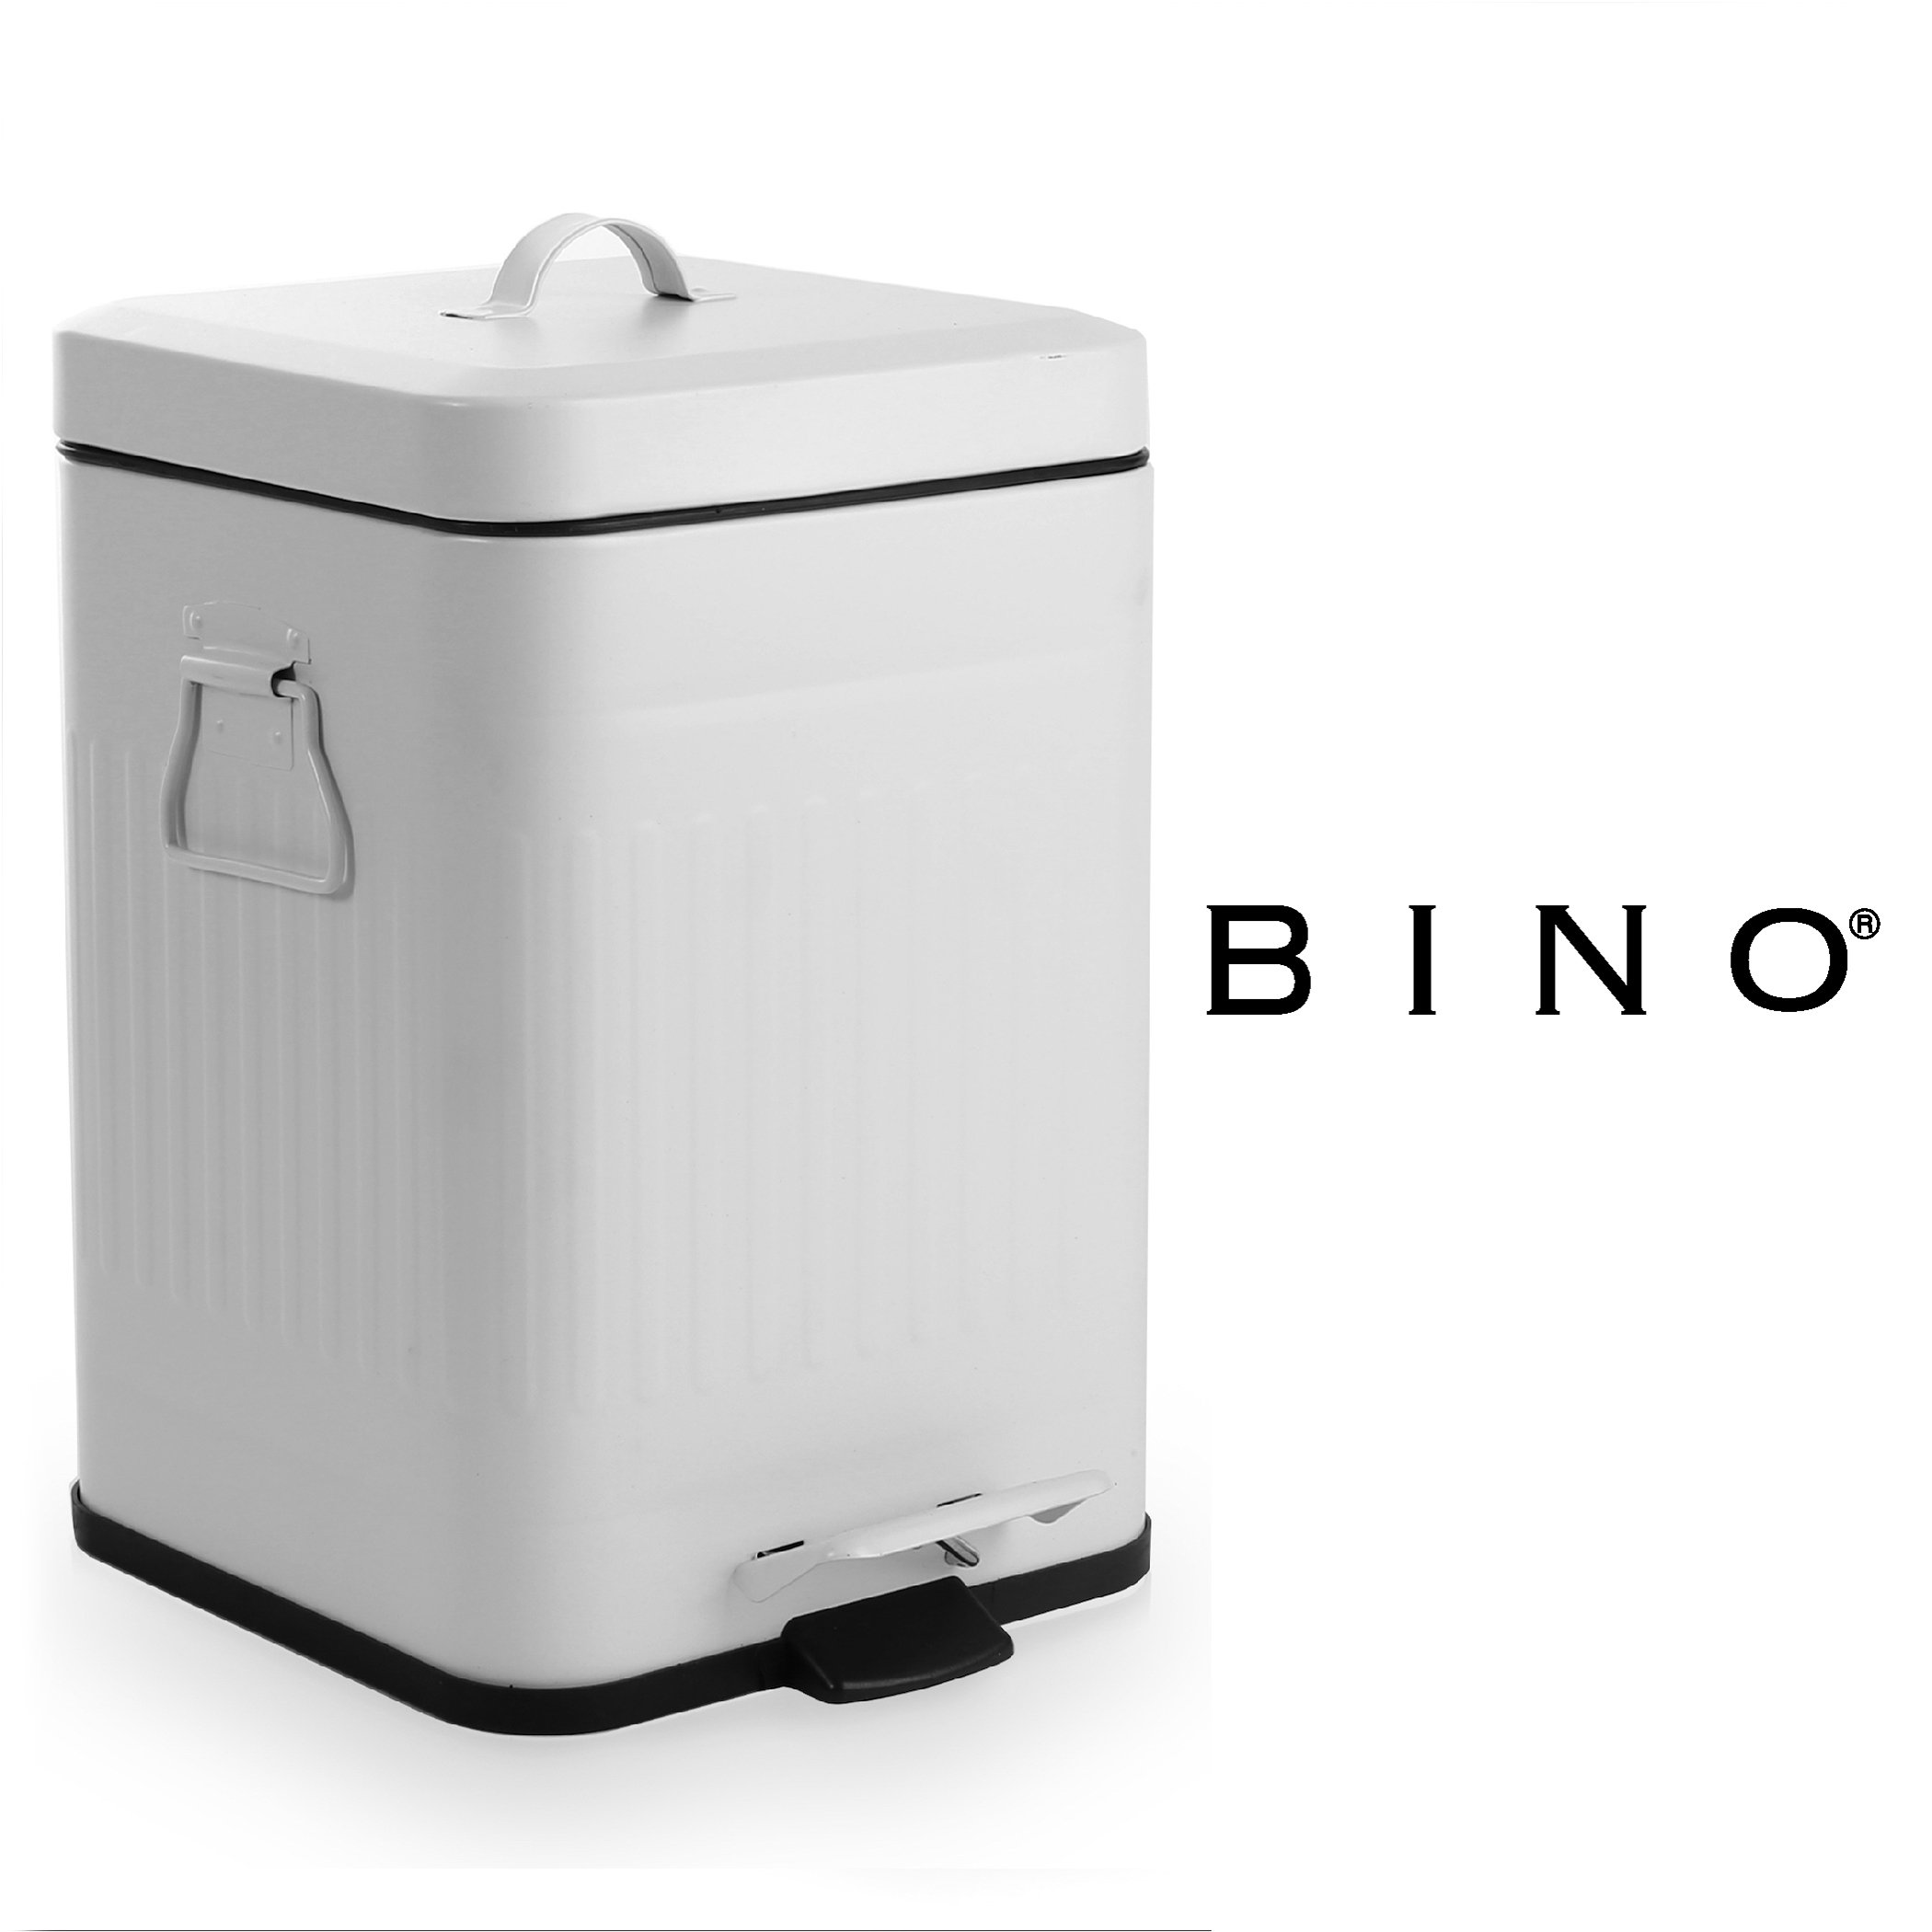 BINO Stainless Steel 1.3 Gallon / 5 Liter Square Oscar Step Trash Can, Matte White